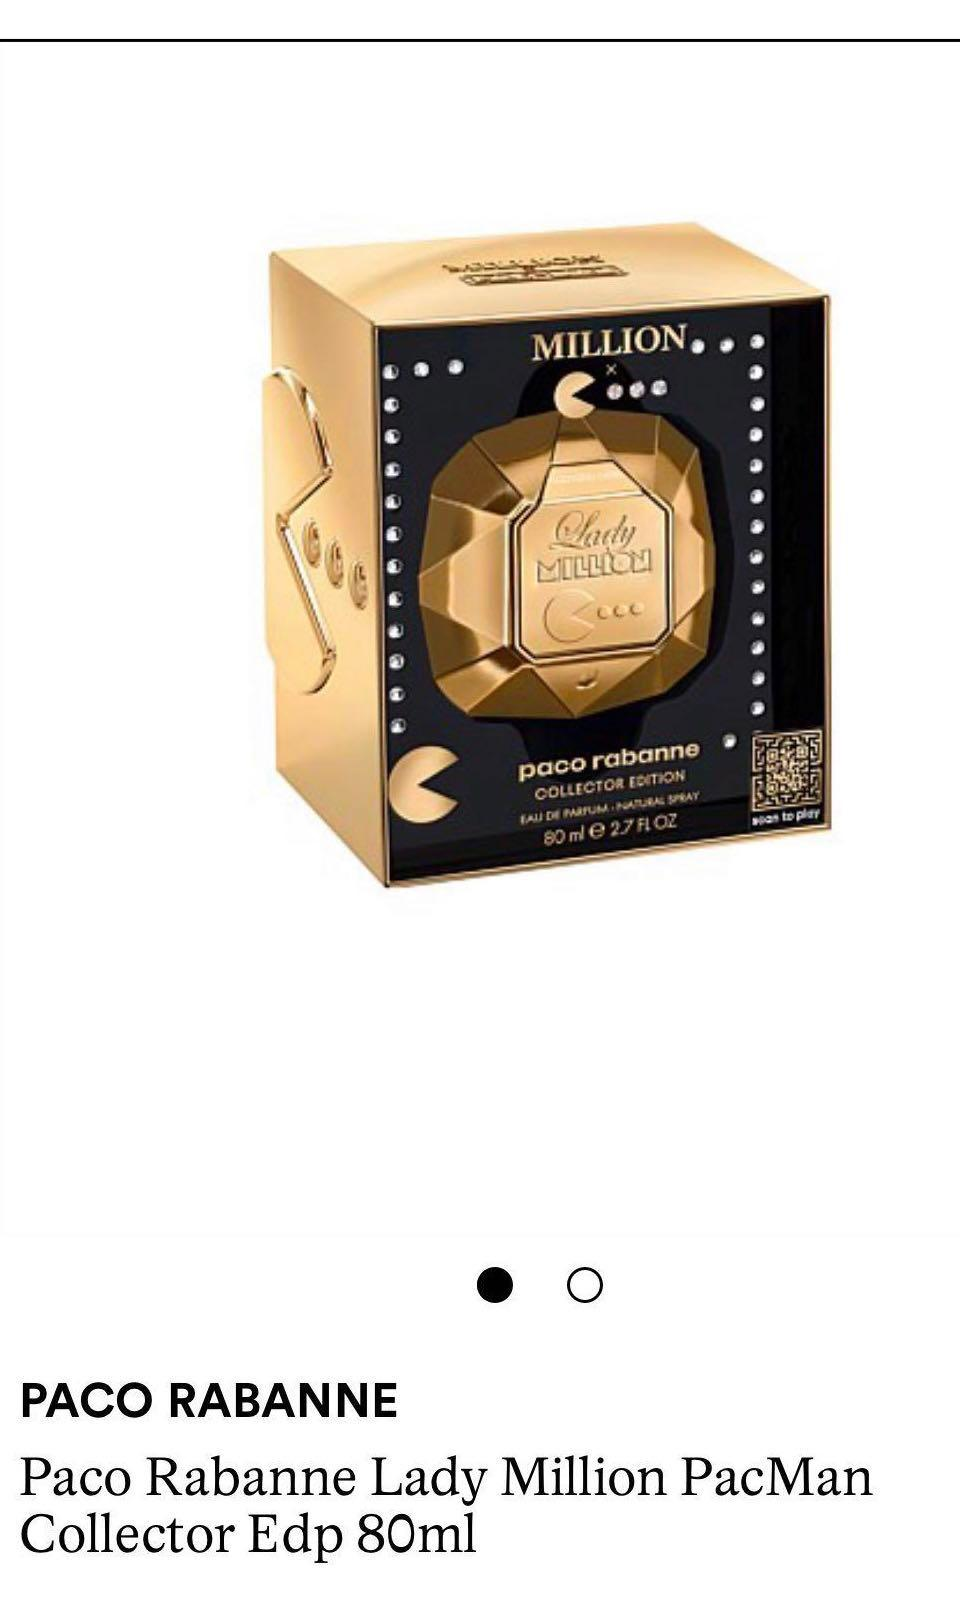 Paco Rabanne Lady Million x Pac-man *LIMITED EDITION*